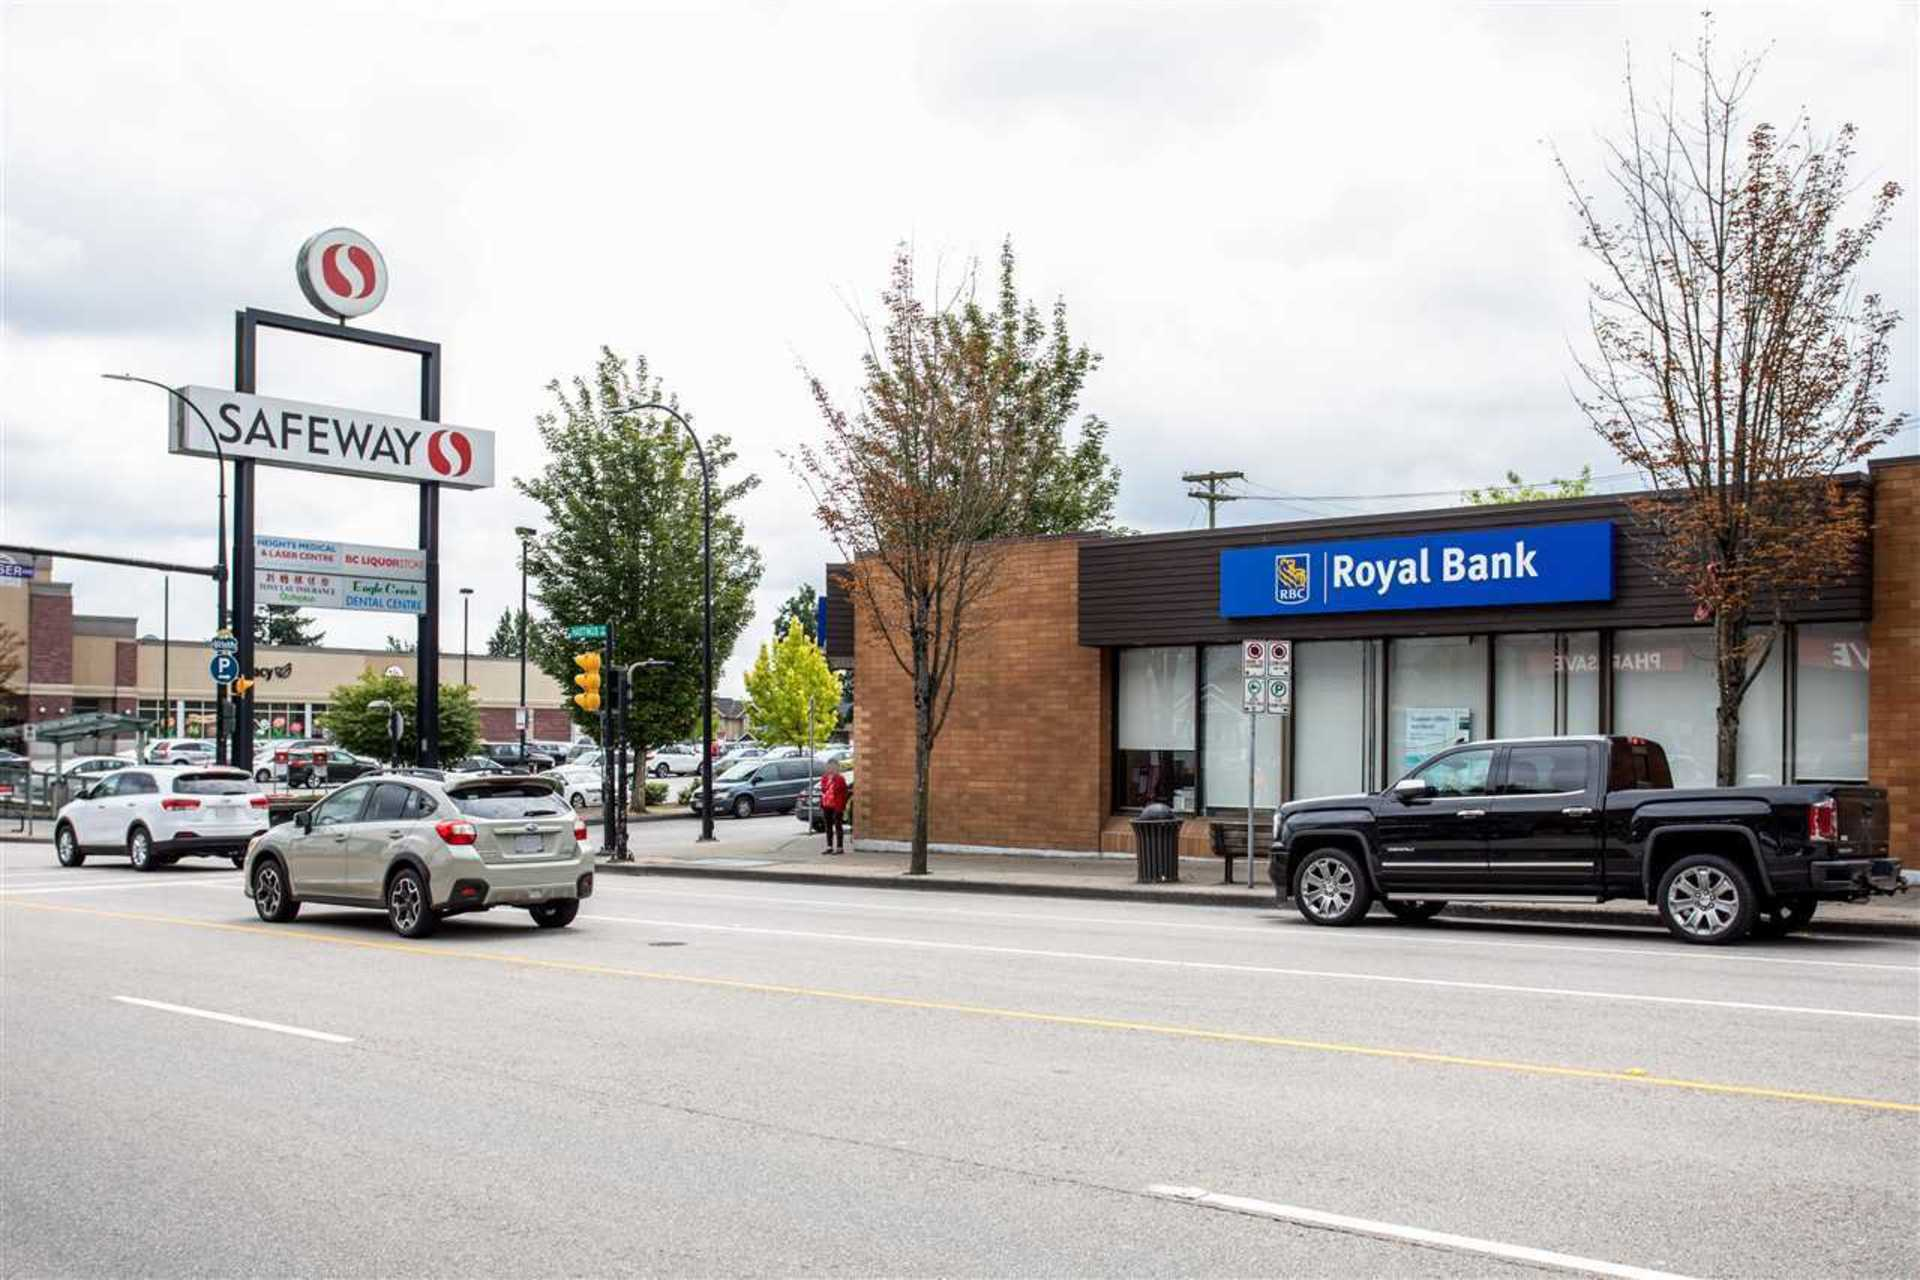 4556-pender-street-capitol-hill-bn-burnaby-north-18 at 4556 Pender Street, Capitol Hill BN, Burnaby North